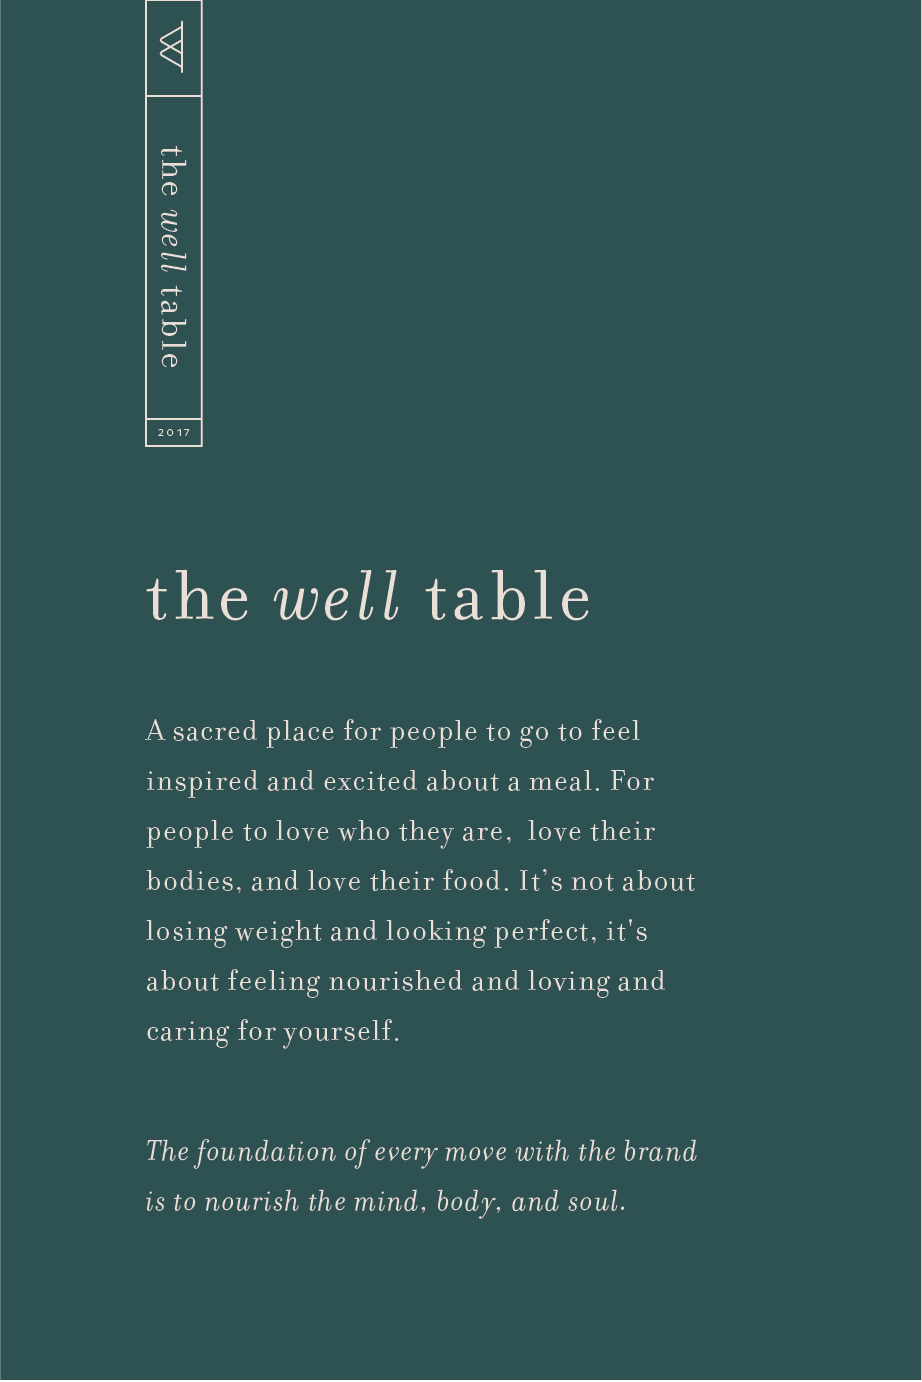 TheWellTable_AndreaCrouseDesign_Branding_About.jpg